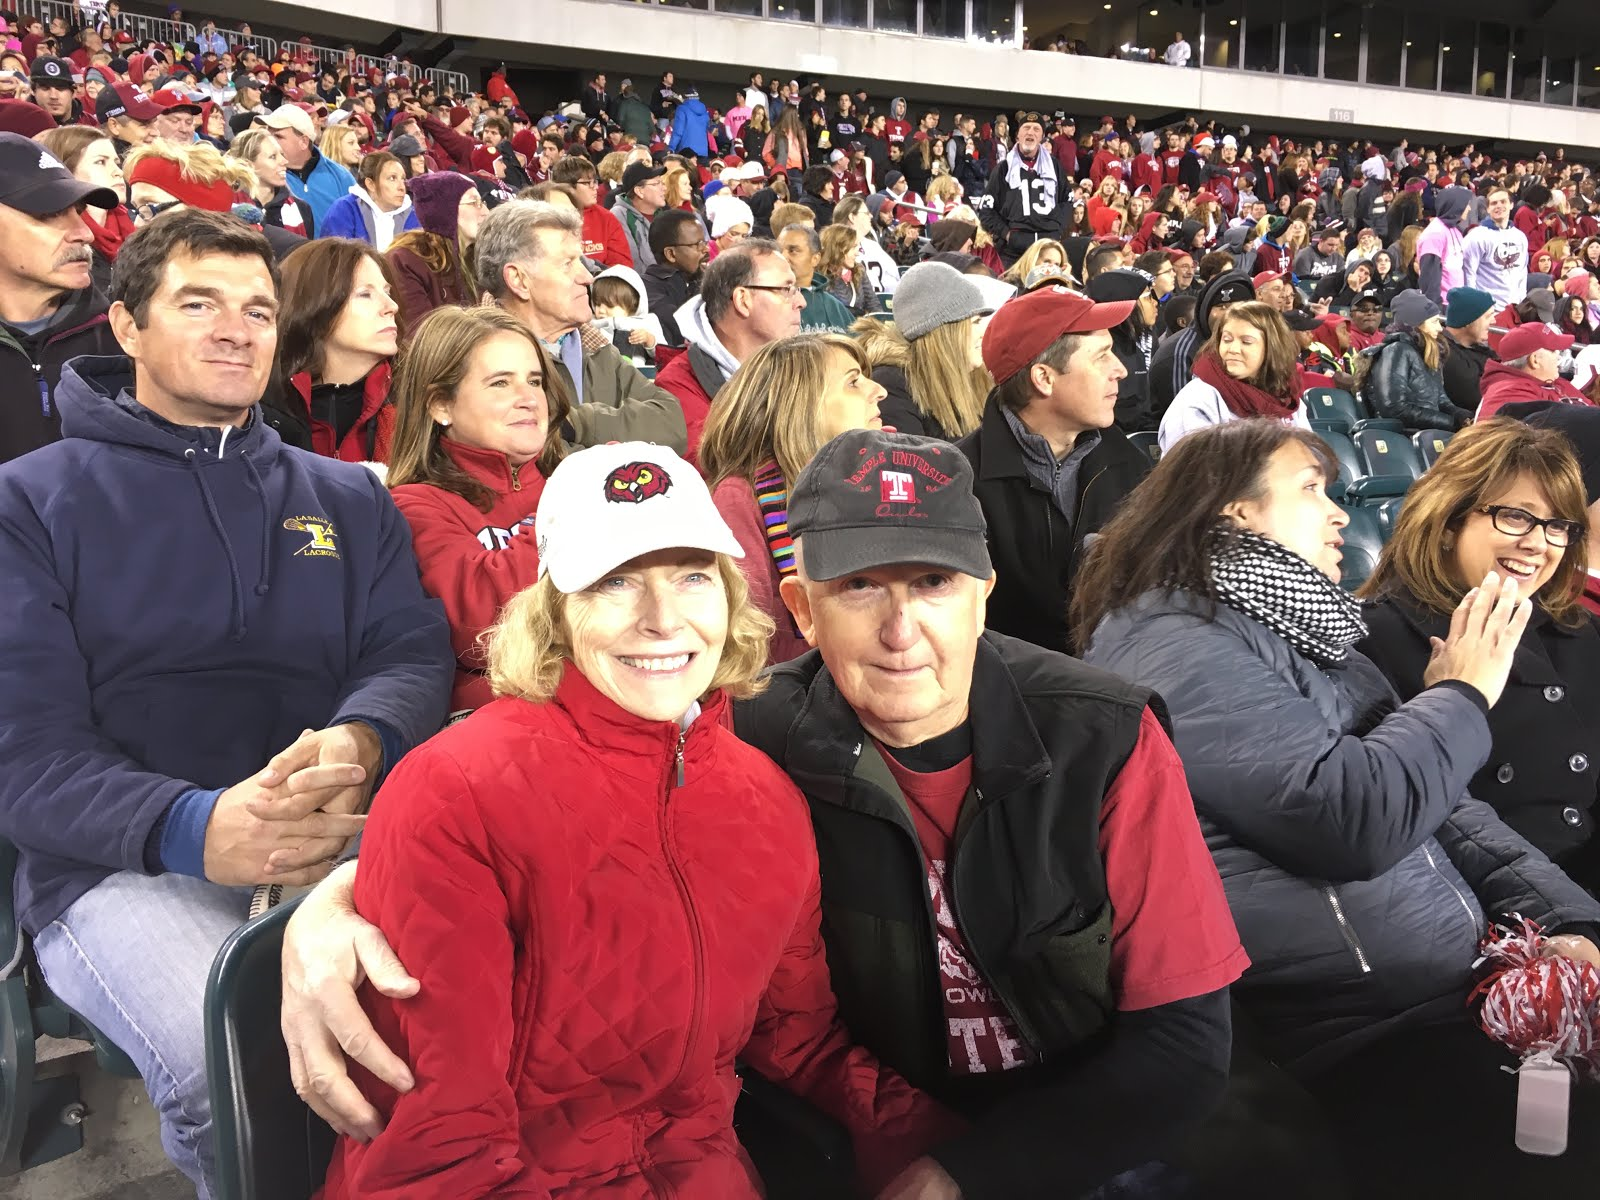 Ron and Denise in their season ticket seats for Owls football.